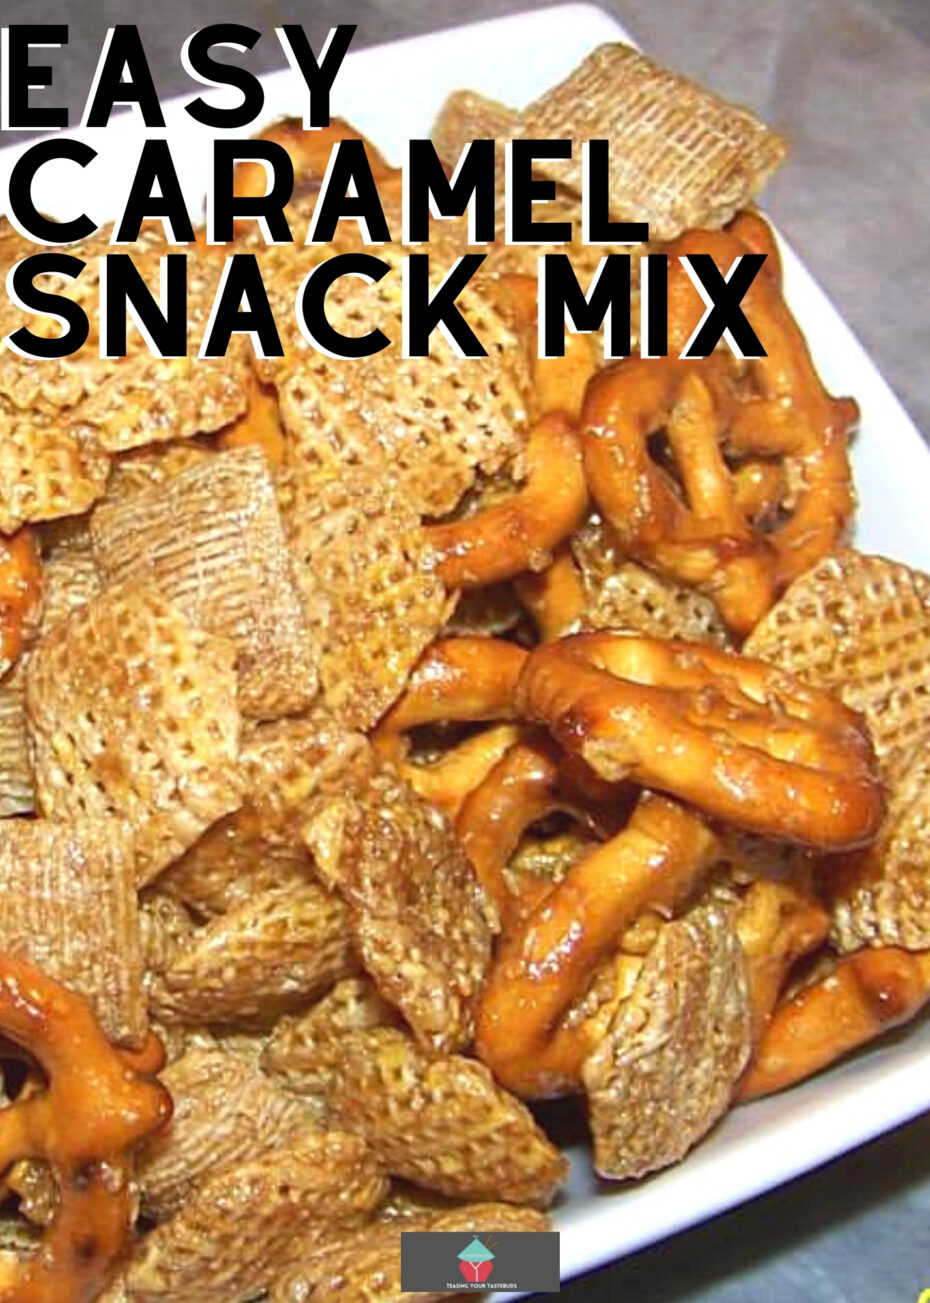 Easy Caramel Snack Mix, a variety of cereals, dried fruits and nuts, coated in delicious caramel then baked until perfectly golden. Great for parties, gift packages and holidays! Freezer friendly and stores well.